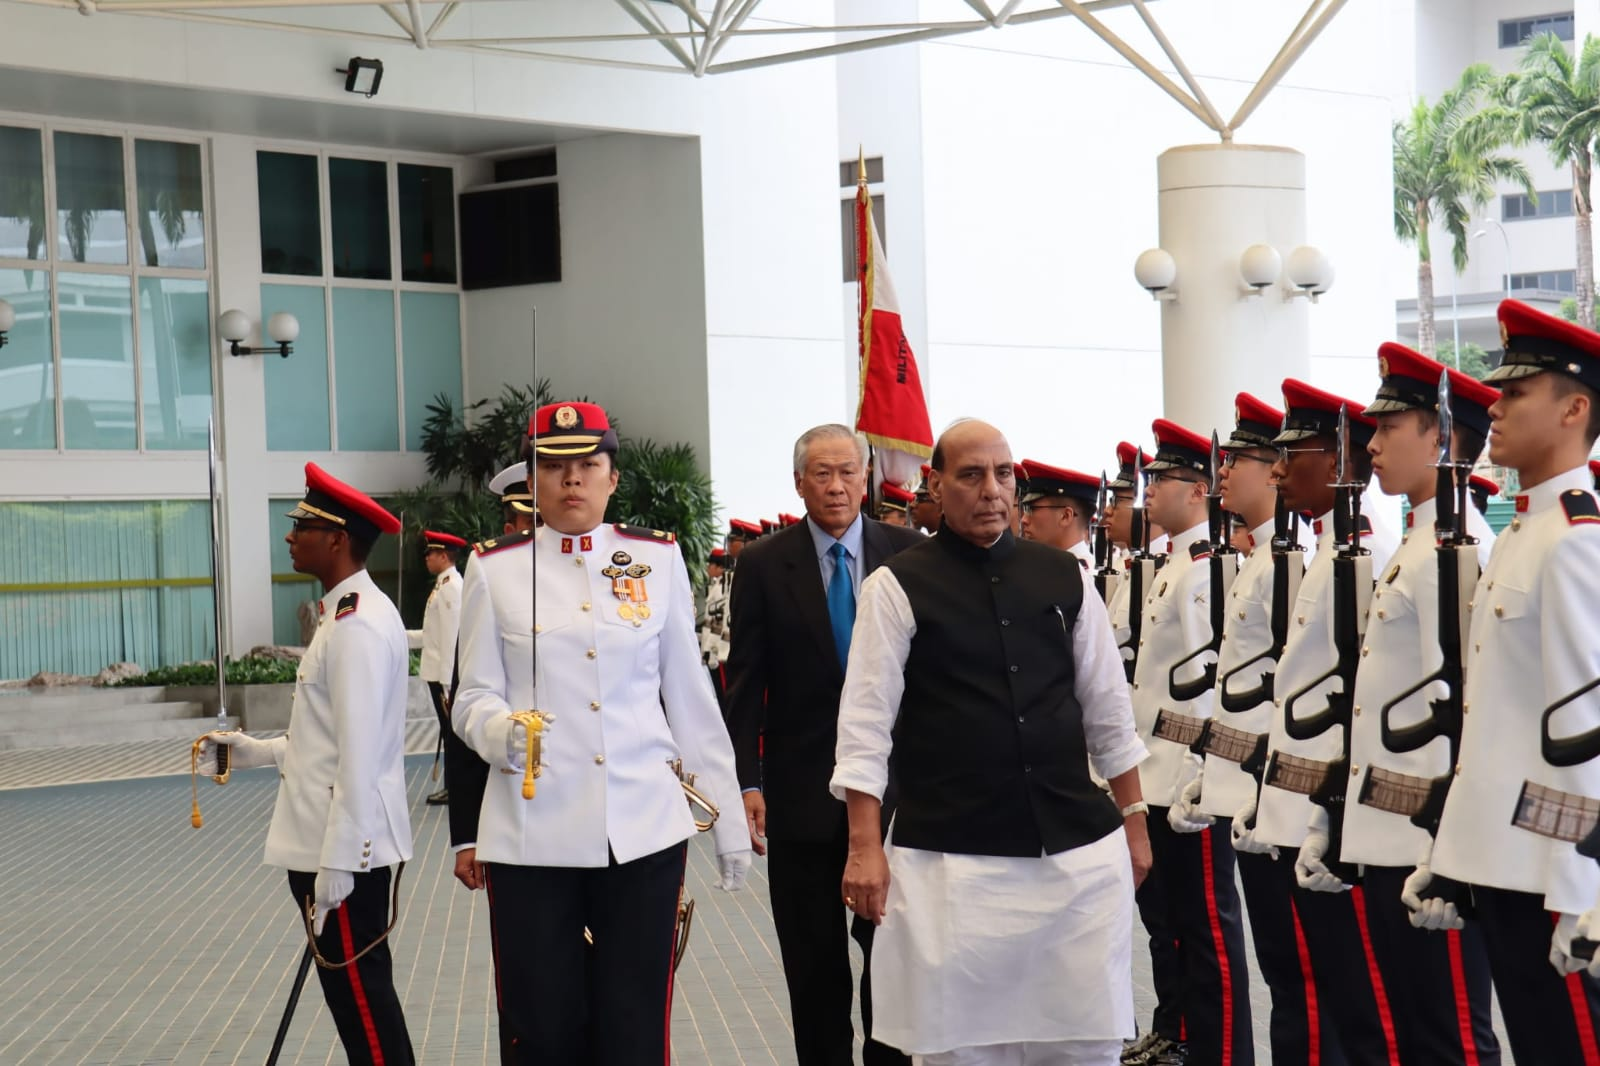 Raksha Mantri Shri  @rajnathsingh  receiving the Guard of Honour before the 4th Singapore - India Defence Ministers' Dialogue in Singapore, today.